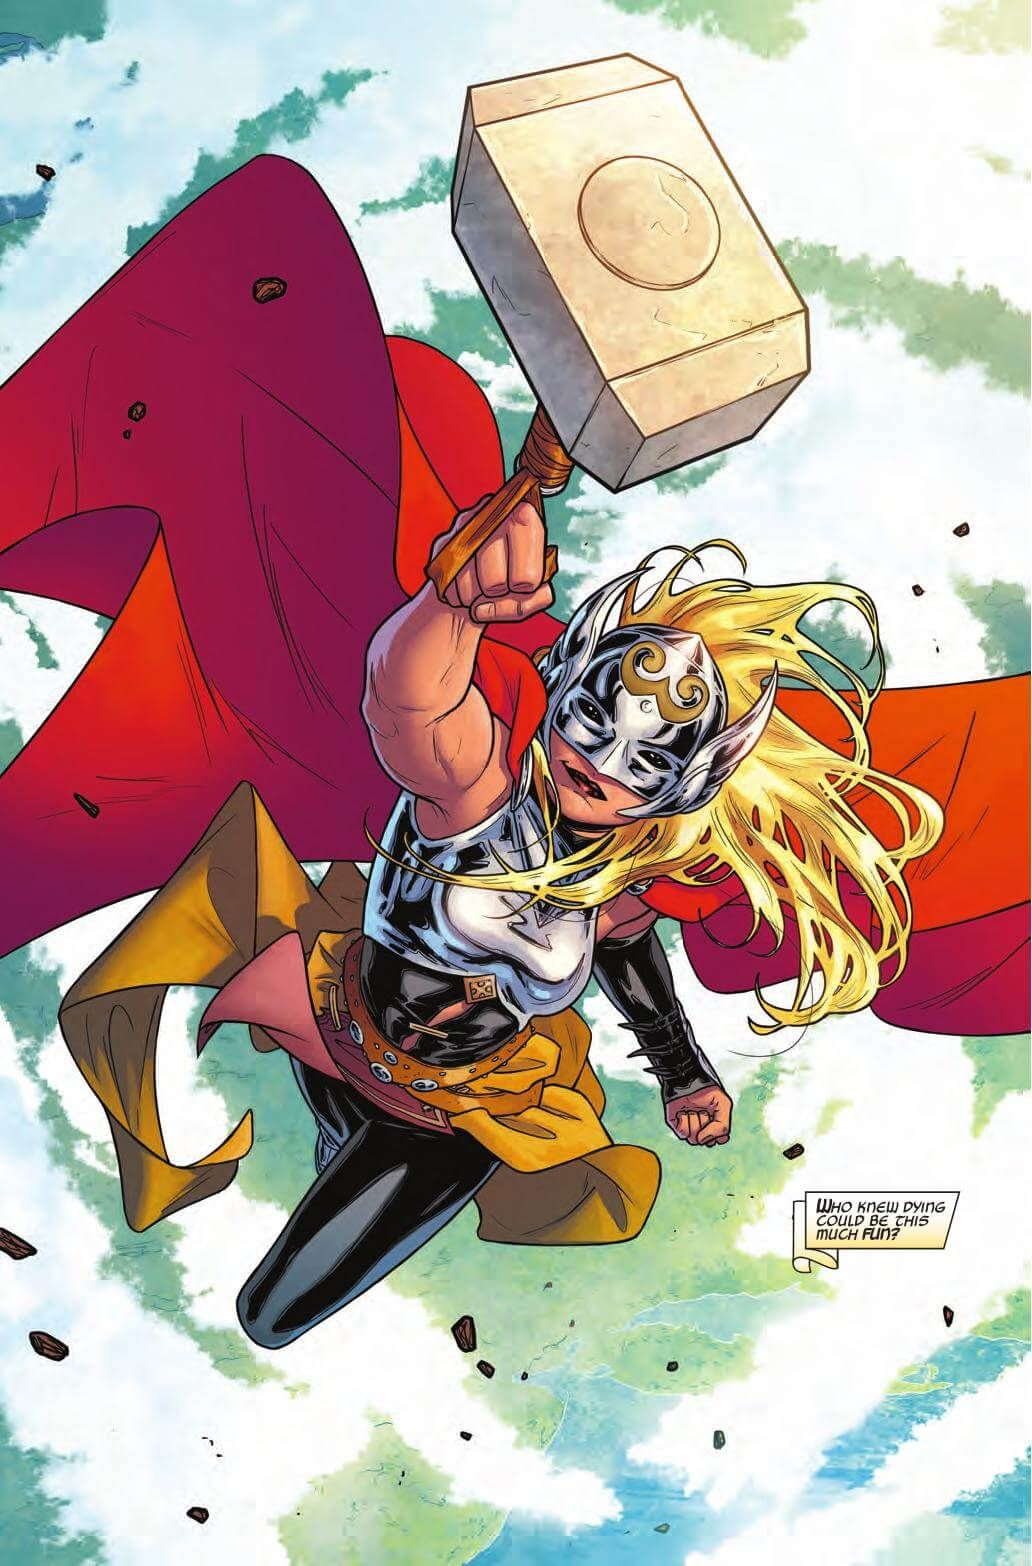 Preview: The Mighty Thor #1, Story: Jason Aaron Art: Russell Dauterman Covers: Russell Dauterman, Olivier Coipel & Mike Deodato Jr. Publisher: Marvel Publication Date: Nov...,  #All-Comic #All-ComicPreviews #Comics #JasonAaron #Marvel #MikeDeodatoJr. #OlivierCoipel #previews #RussellDauterman #THEMIGHTYTHOR